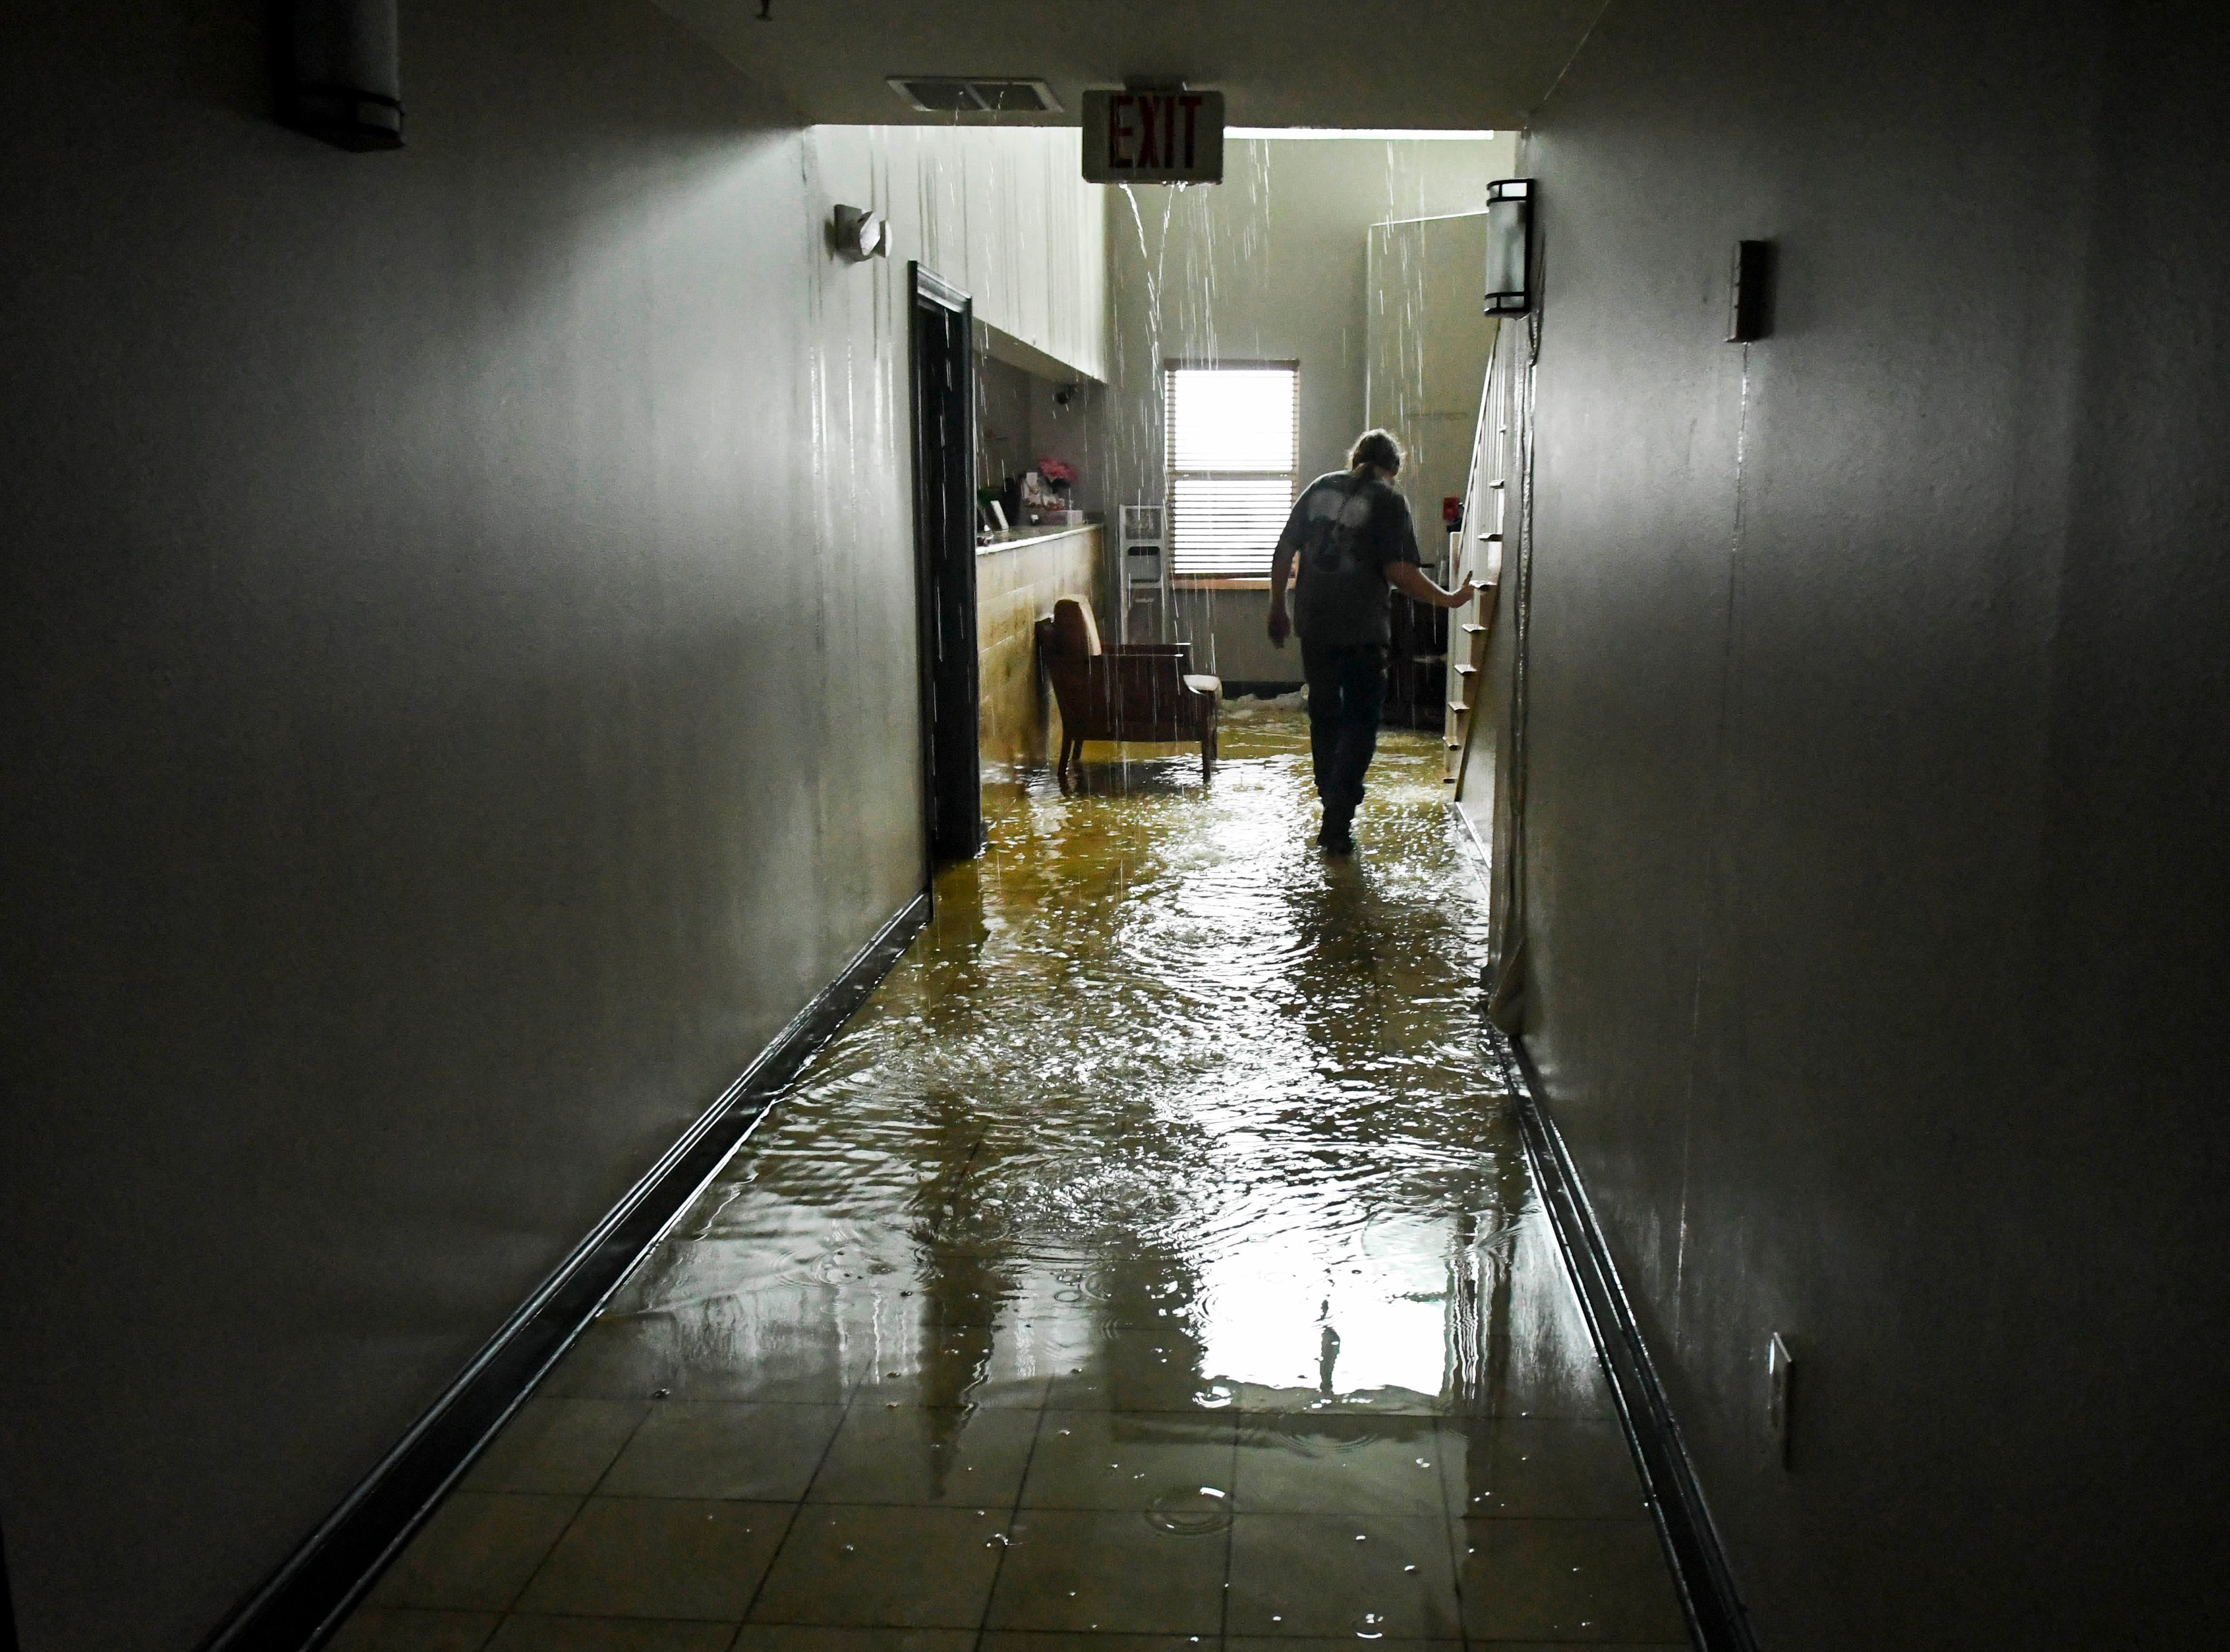 Water pours into the lobby of the Comfort Inn and Suites in Panama City Wednesday. Part of the roof was removed by Hurricane Michael  Mandatory Credit: Craig Bailey/FLORIDA TODAY via USA TODAY NETWORK